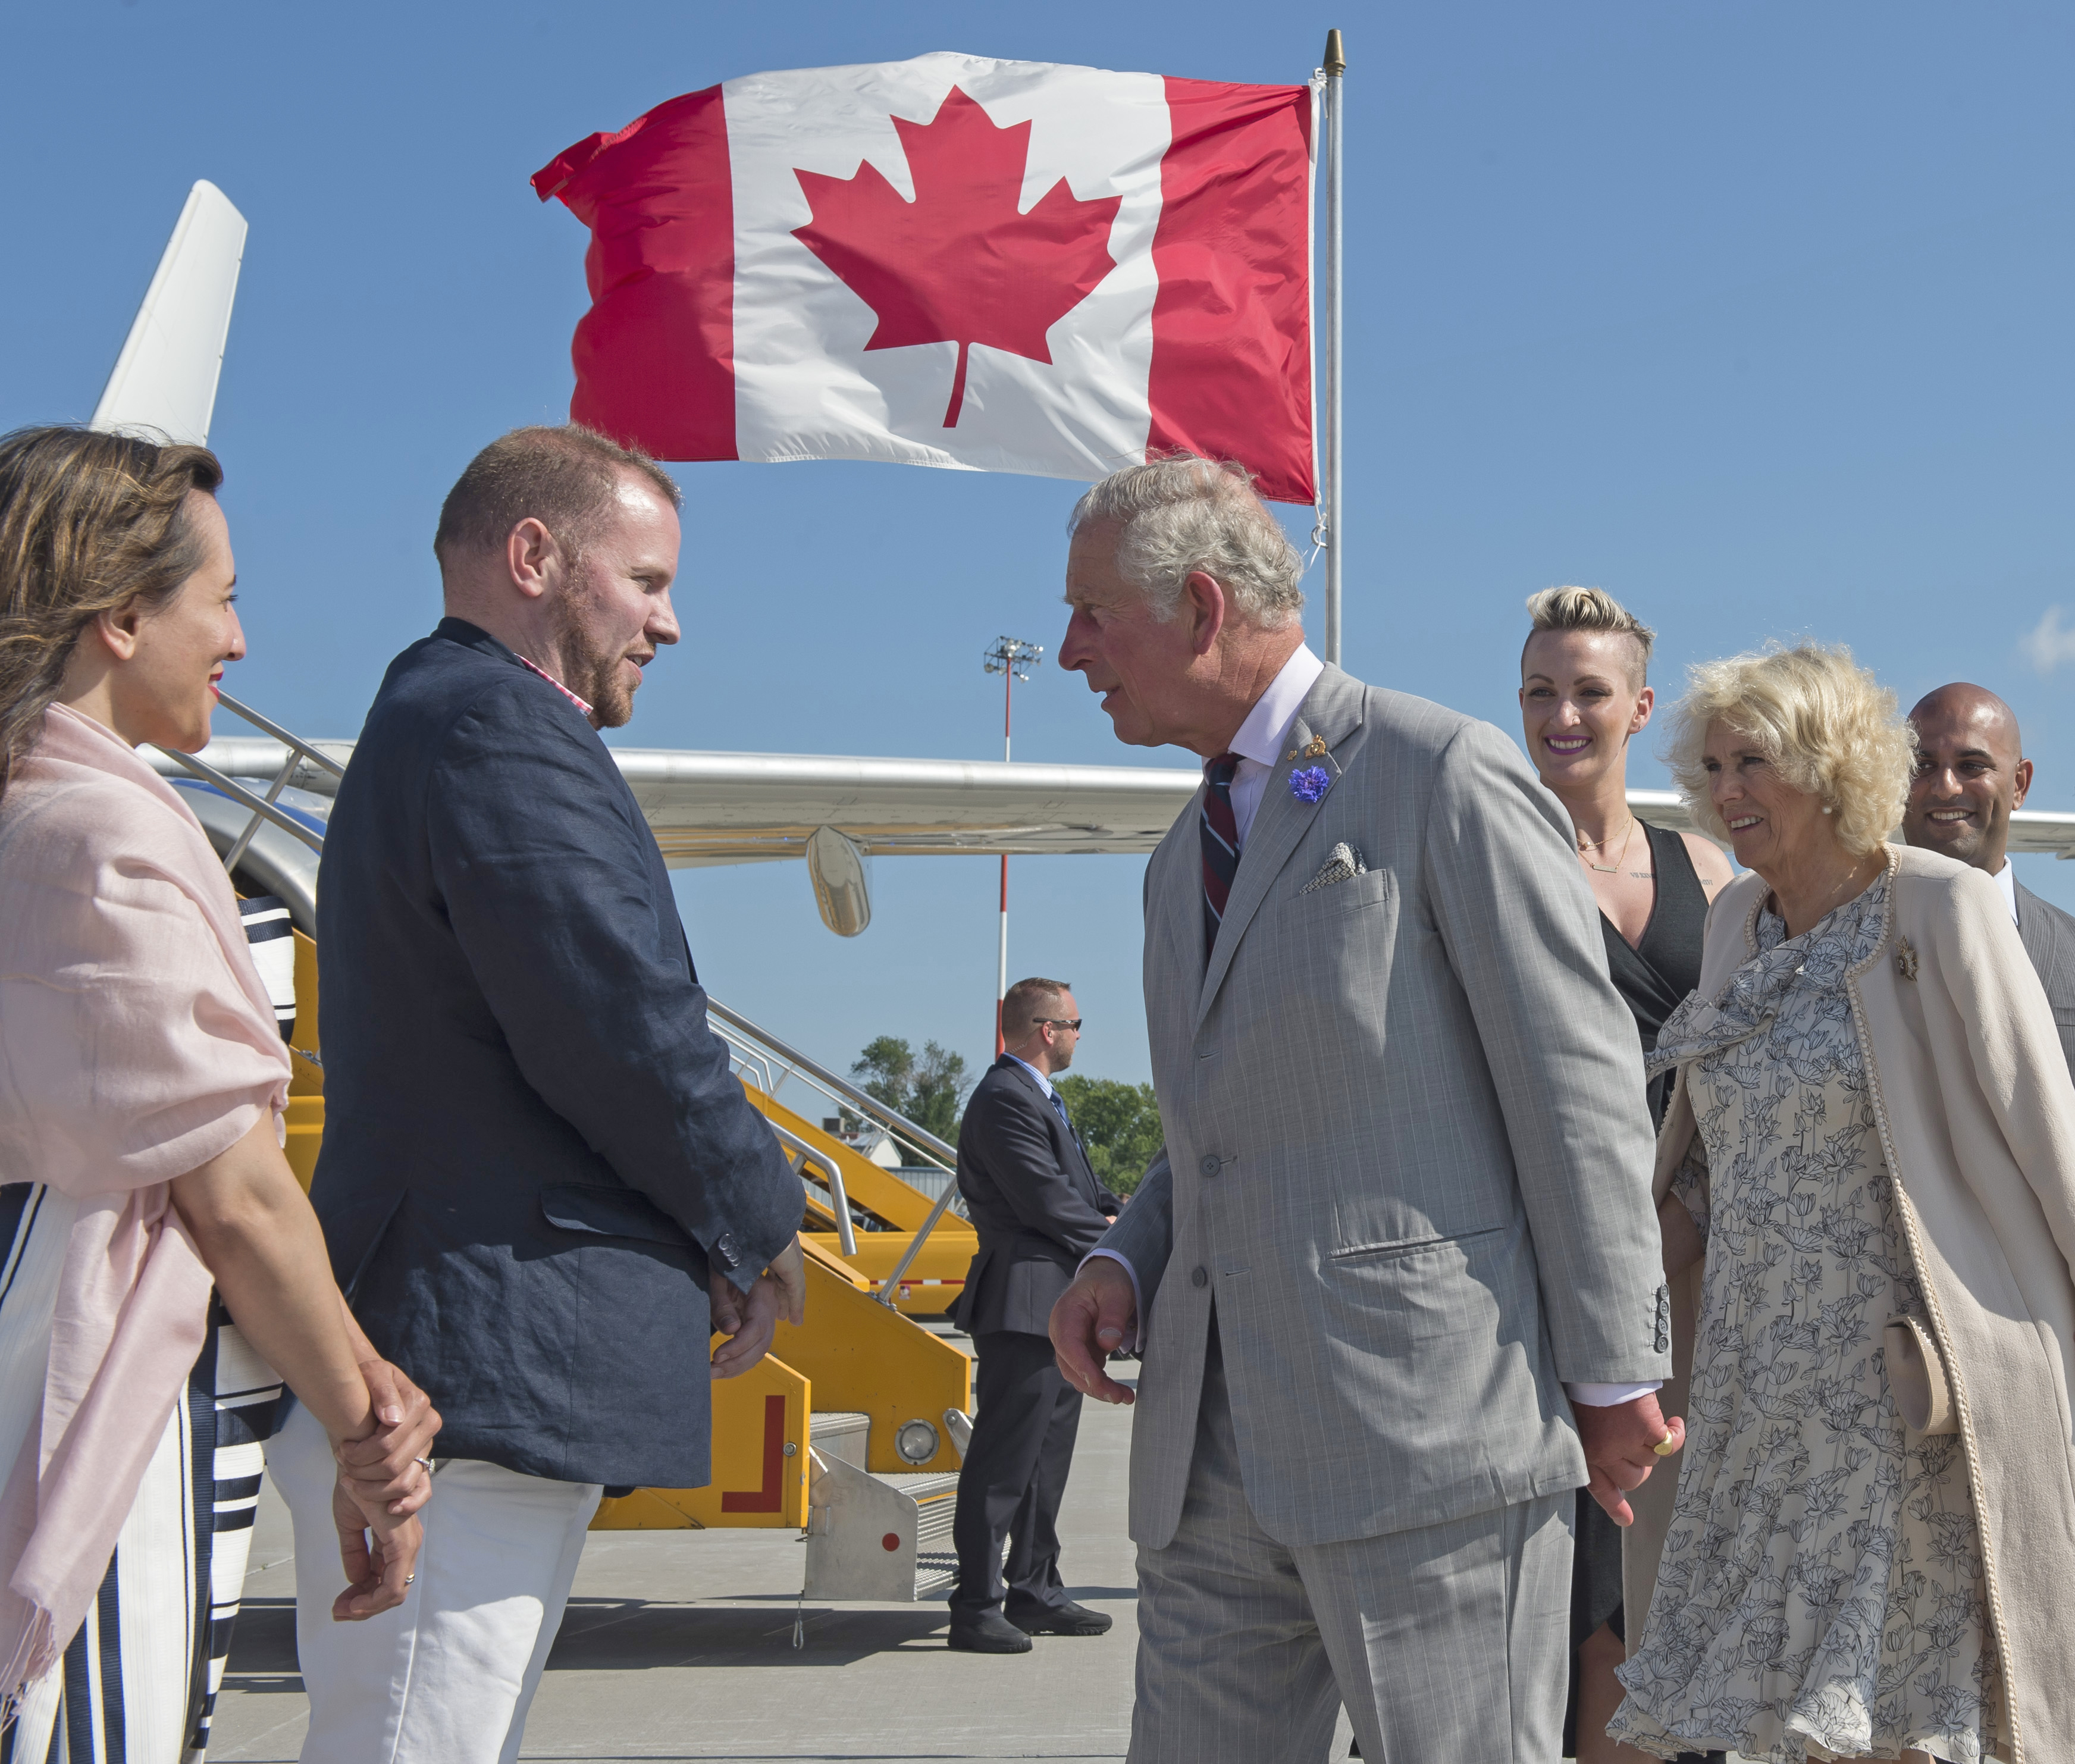 Prince Charles, accompanied by Camilla, Duchess of Cornwall, pauses to speak with Tom Spence and Leen Al-Zaibak from the Ontario Government as they prepare to board an RCAF Polaris aircraft to travel from 8 Wing Trenton to Ottawa, Ontario, on June 30, 2017. PHOTO: Corporal Ryan Moulton, TN11-2017-0398-033